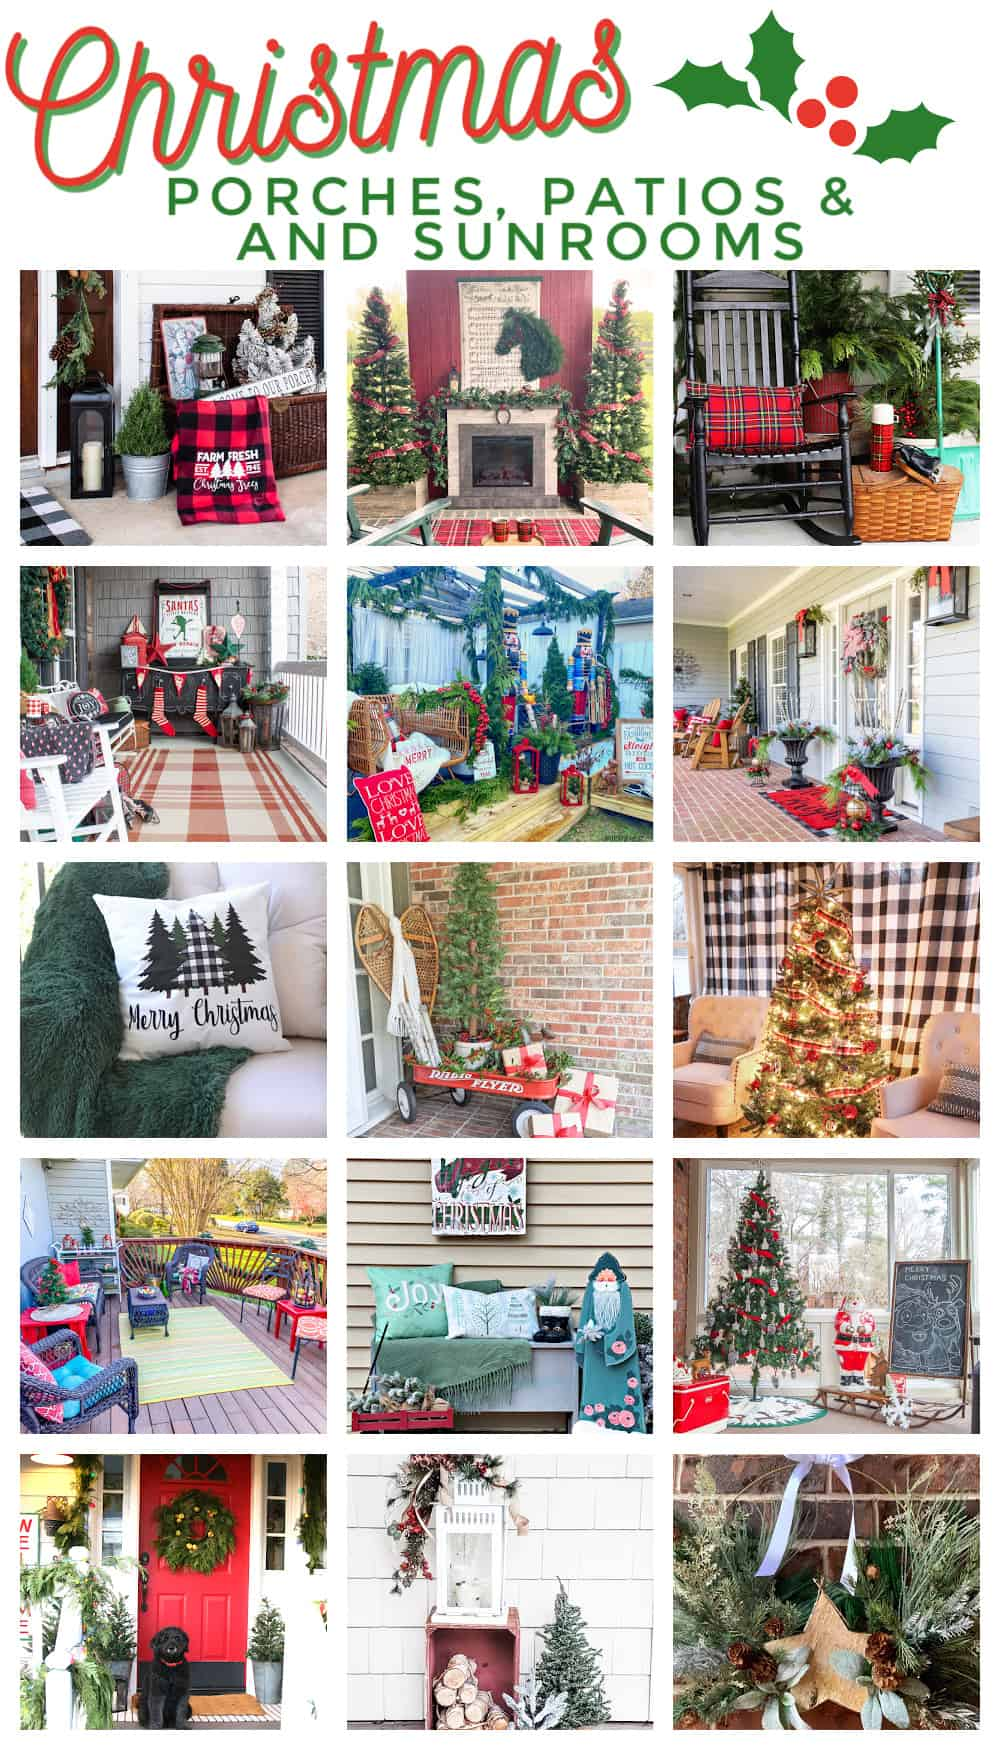 collage showing 15 different porches, patios and sunrooms decorated for Christmas